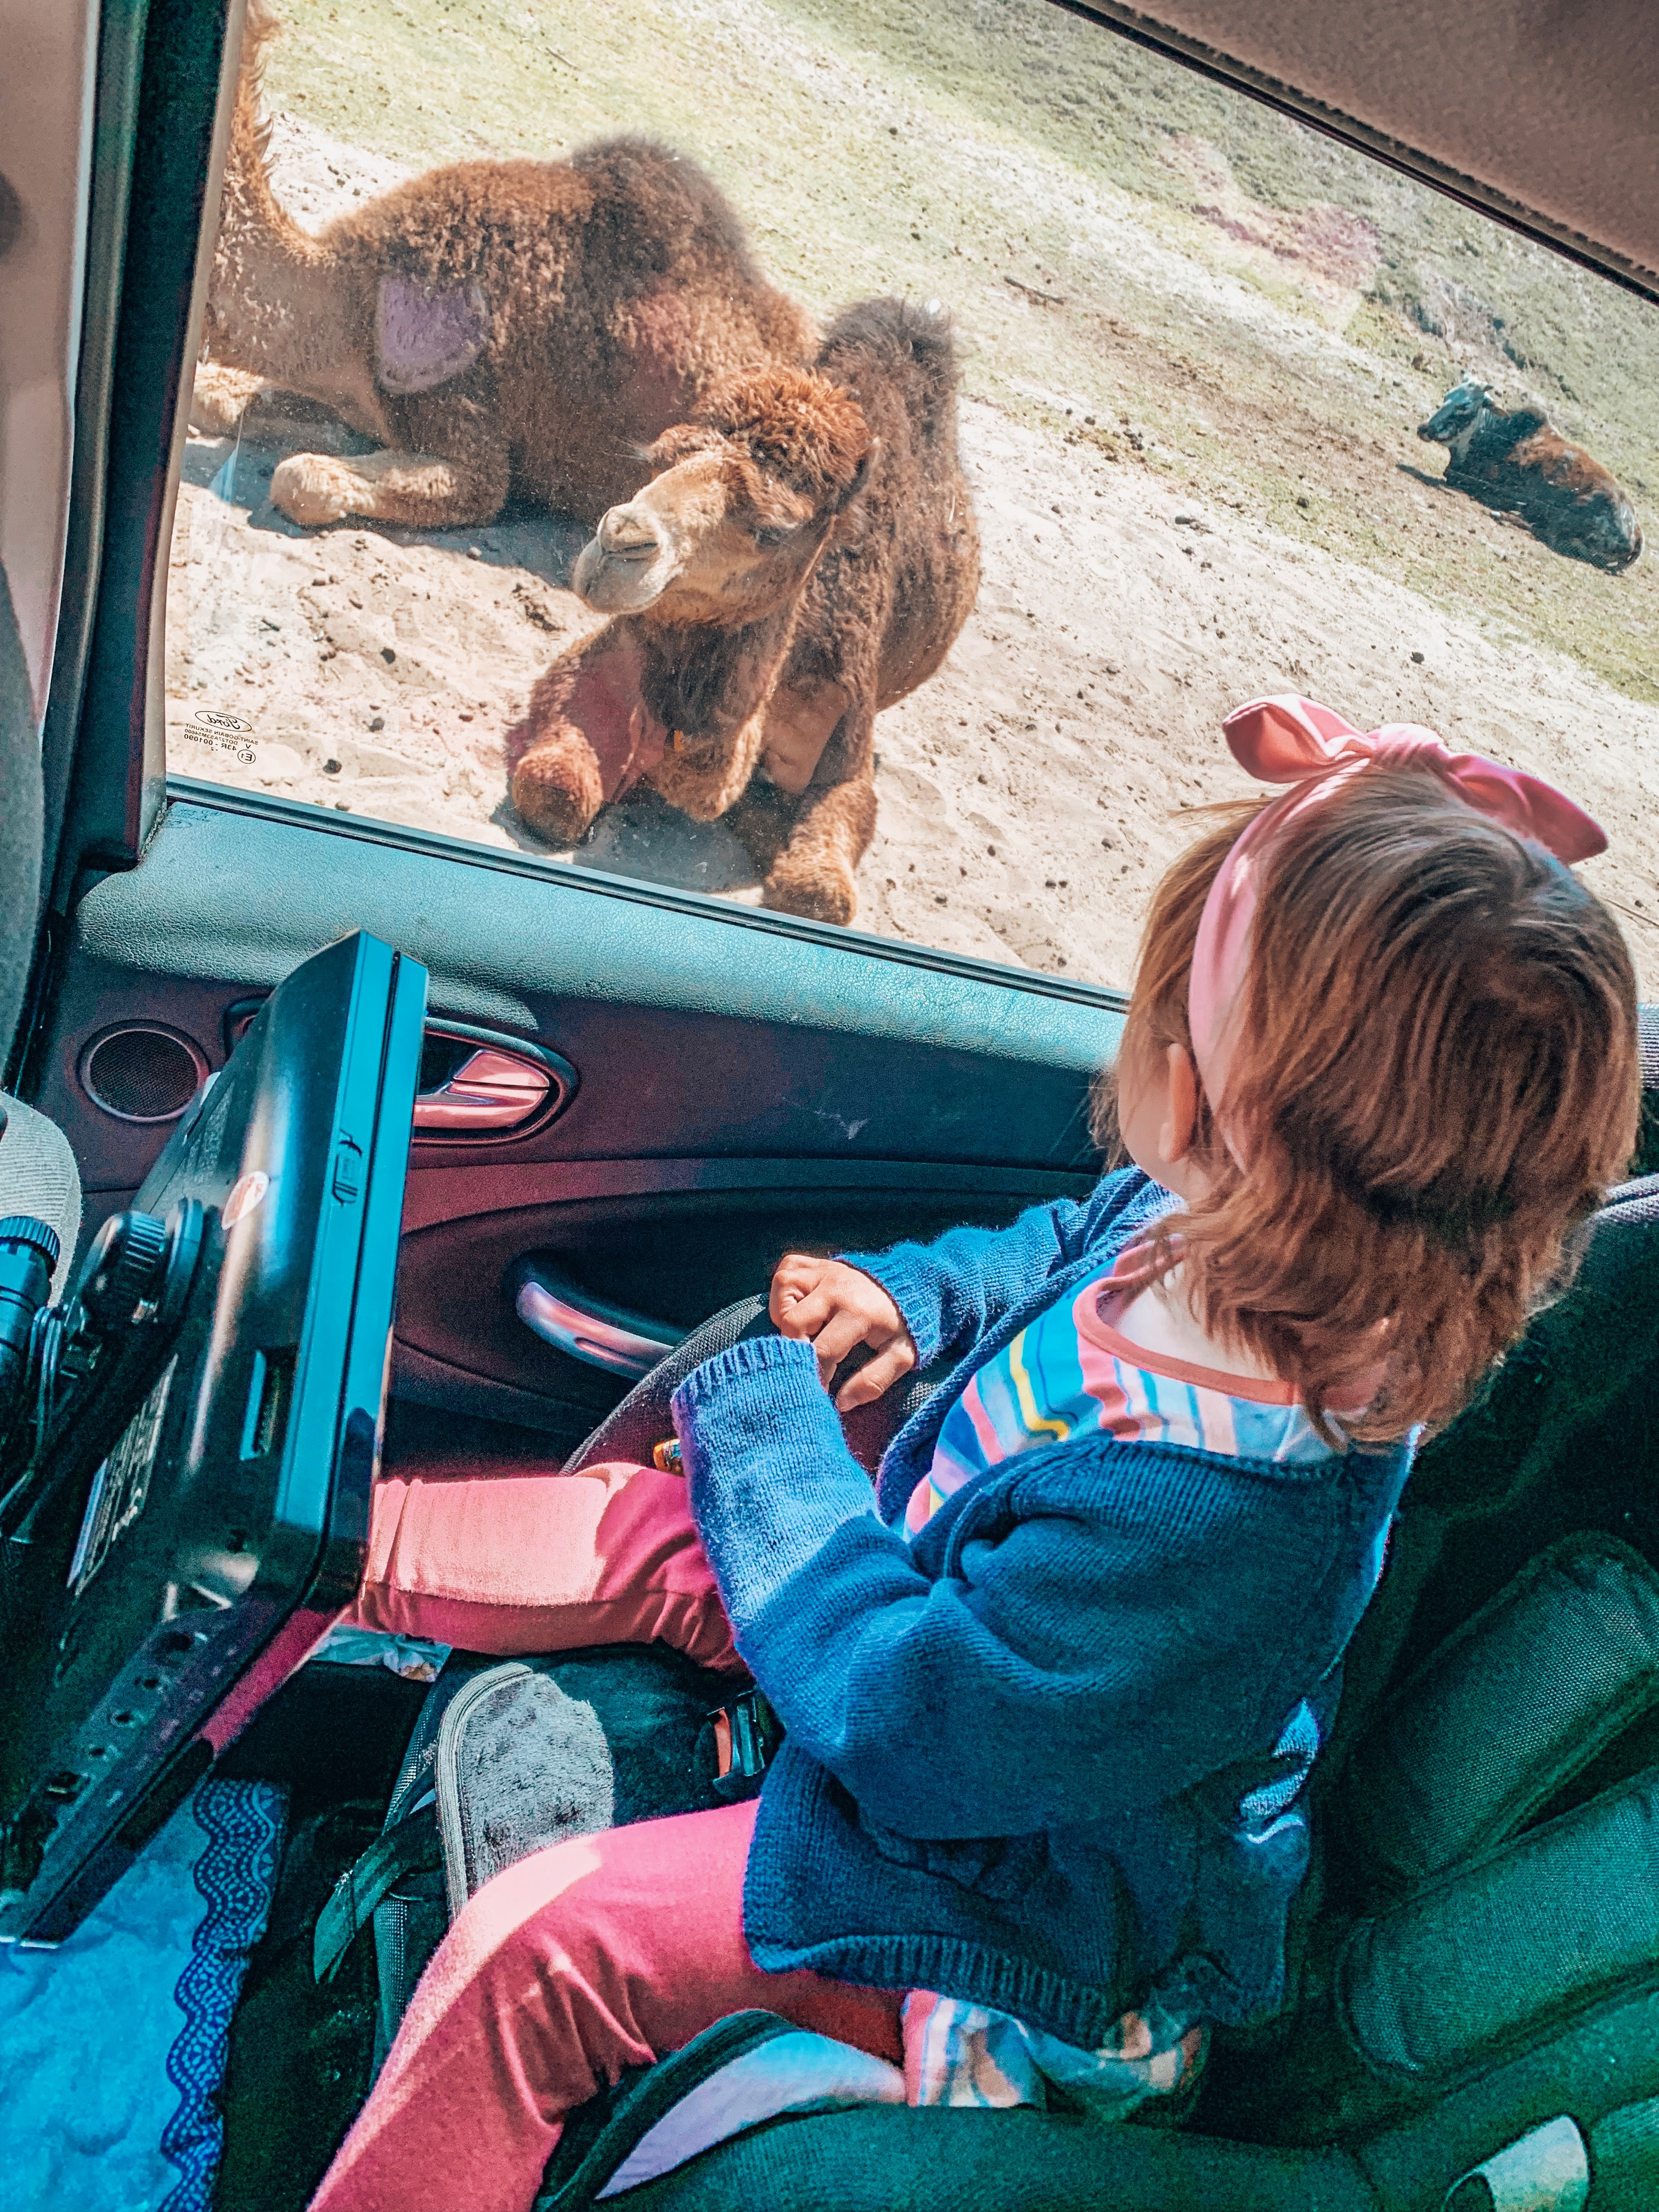 Car safari at Beekse Bergen safari park watching the camels. Places to visit in Holland